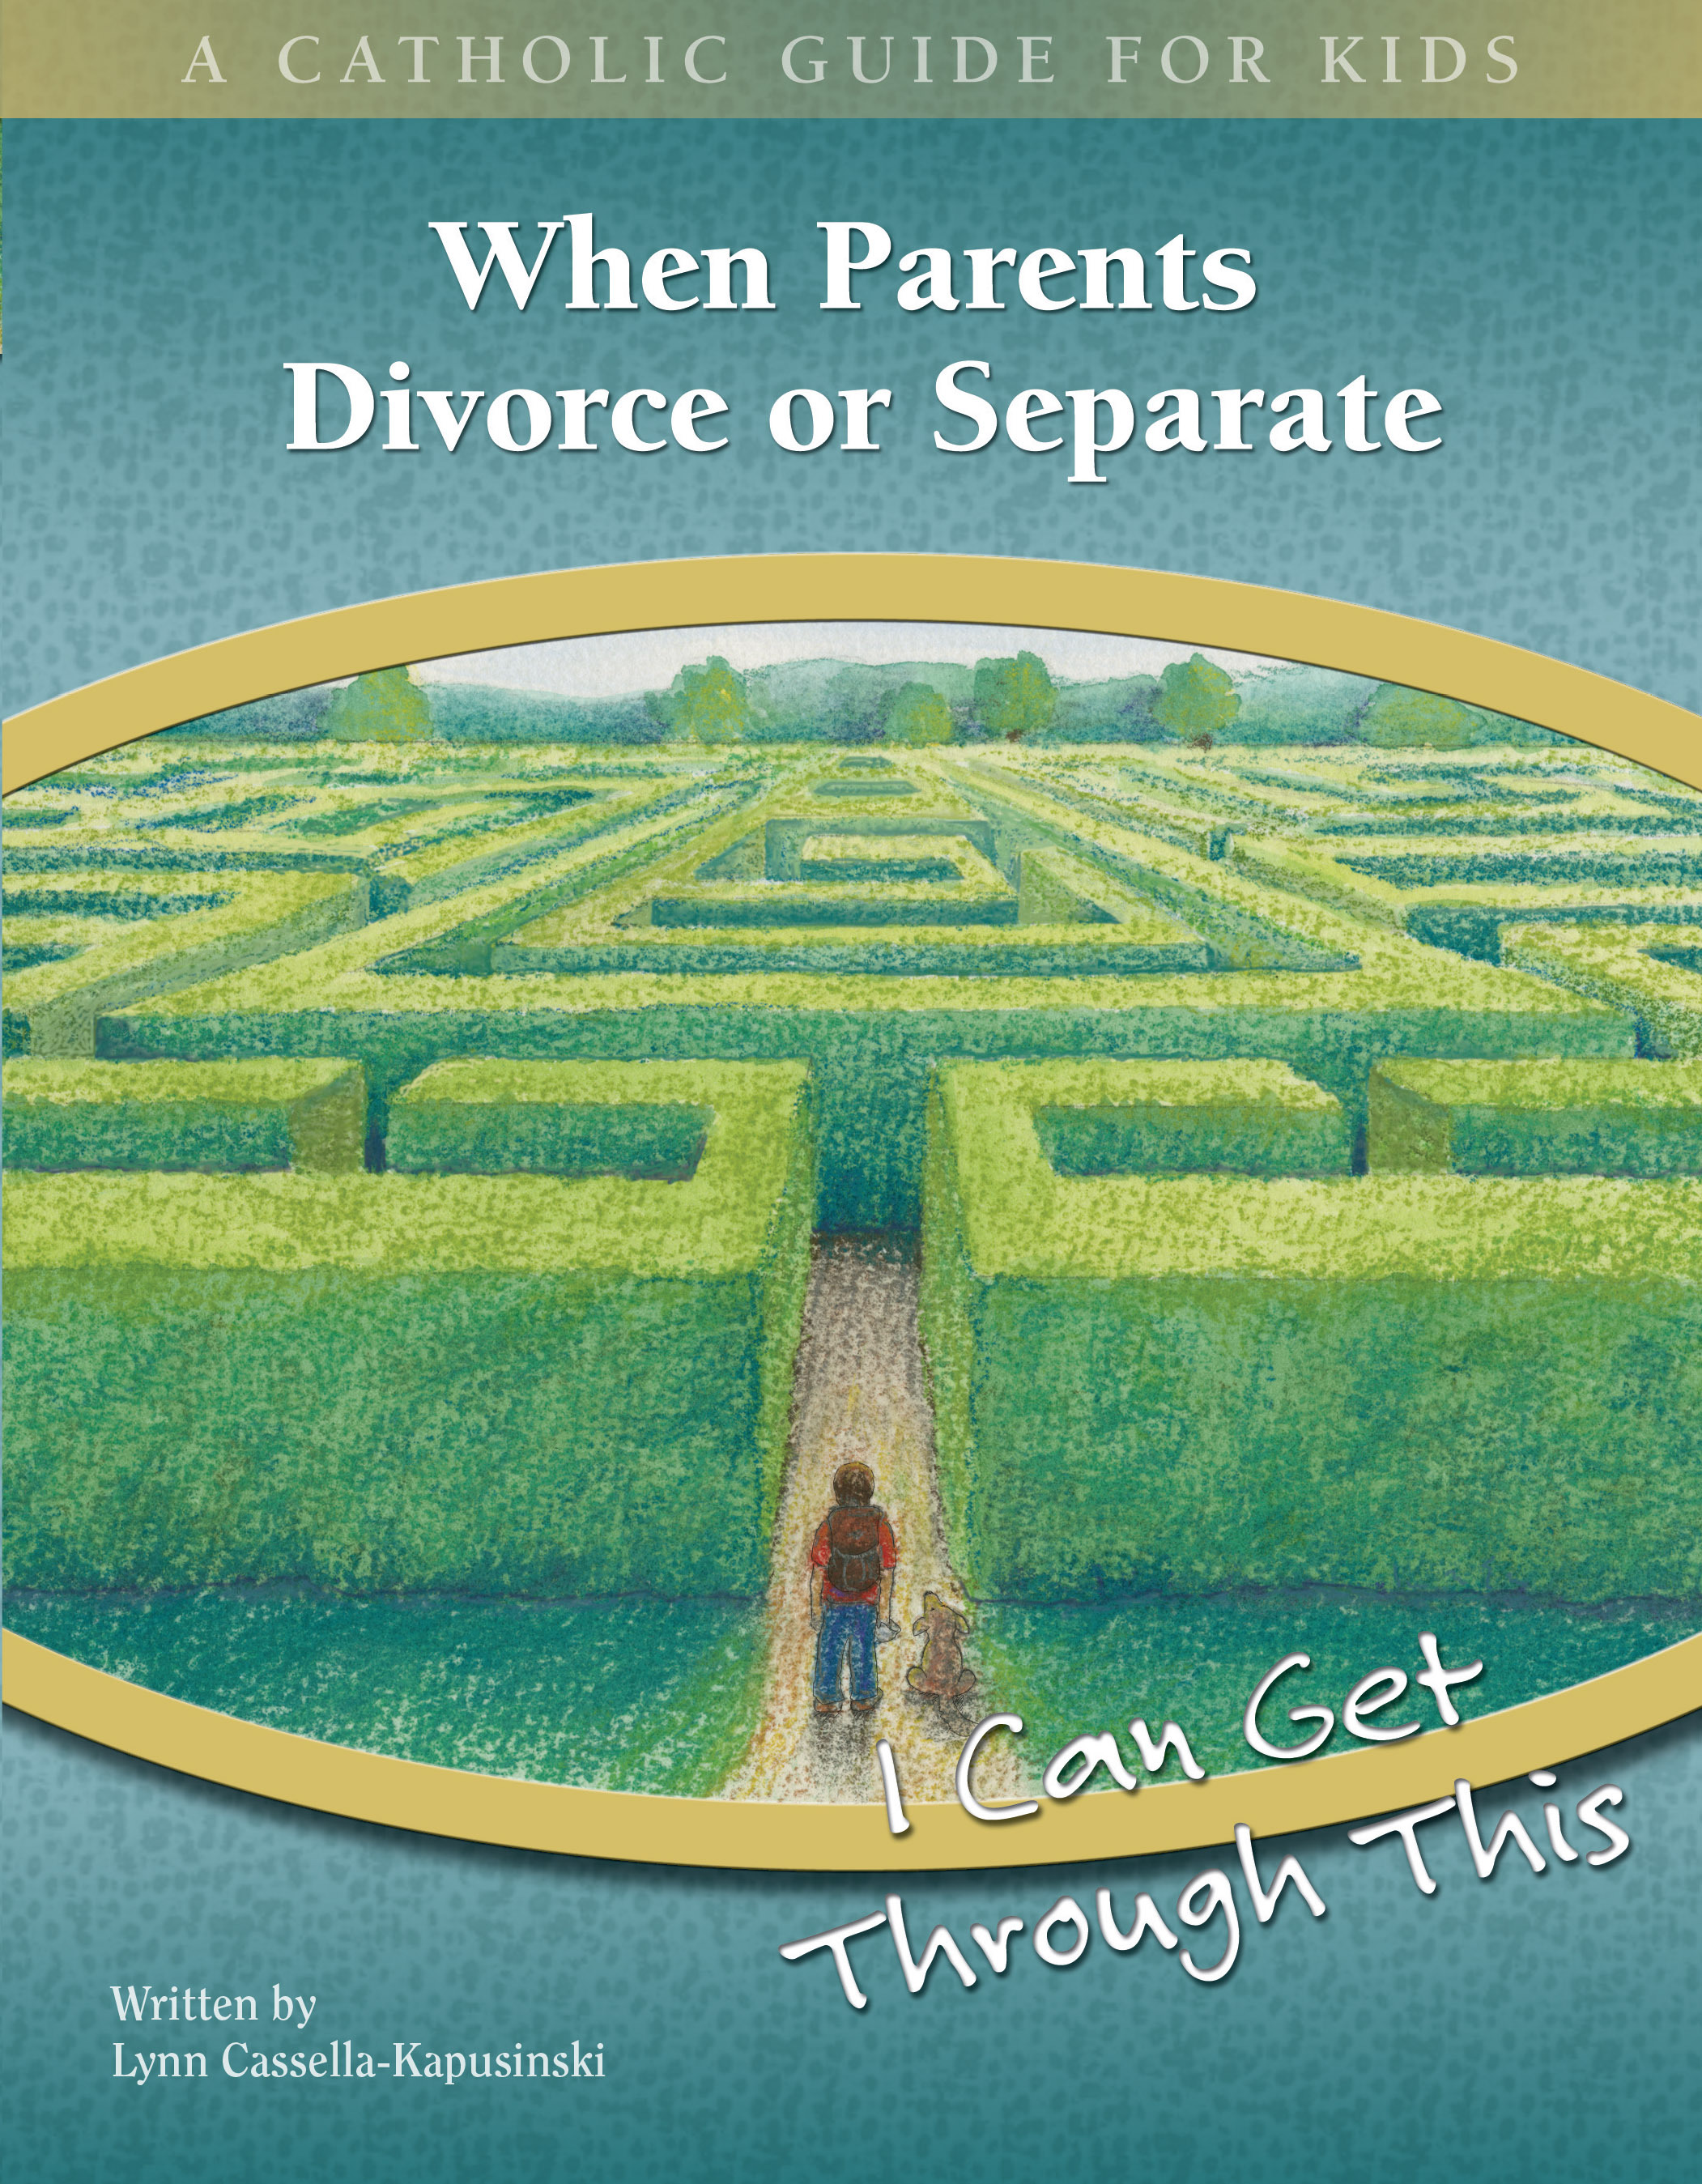 When Parents Divorce or Separate: I Can Get Through This